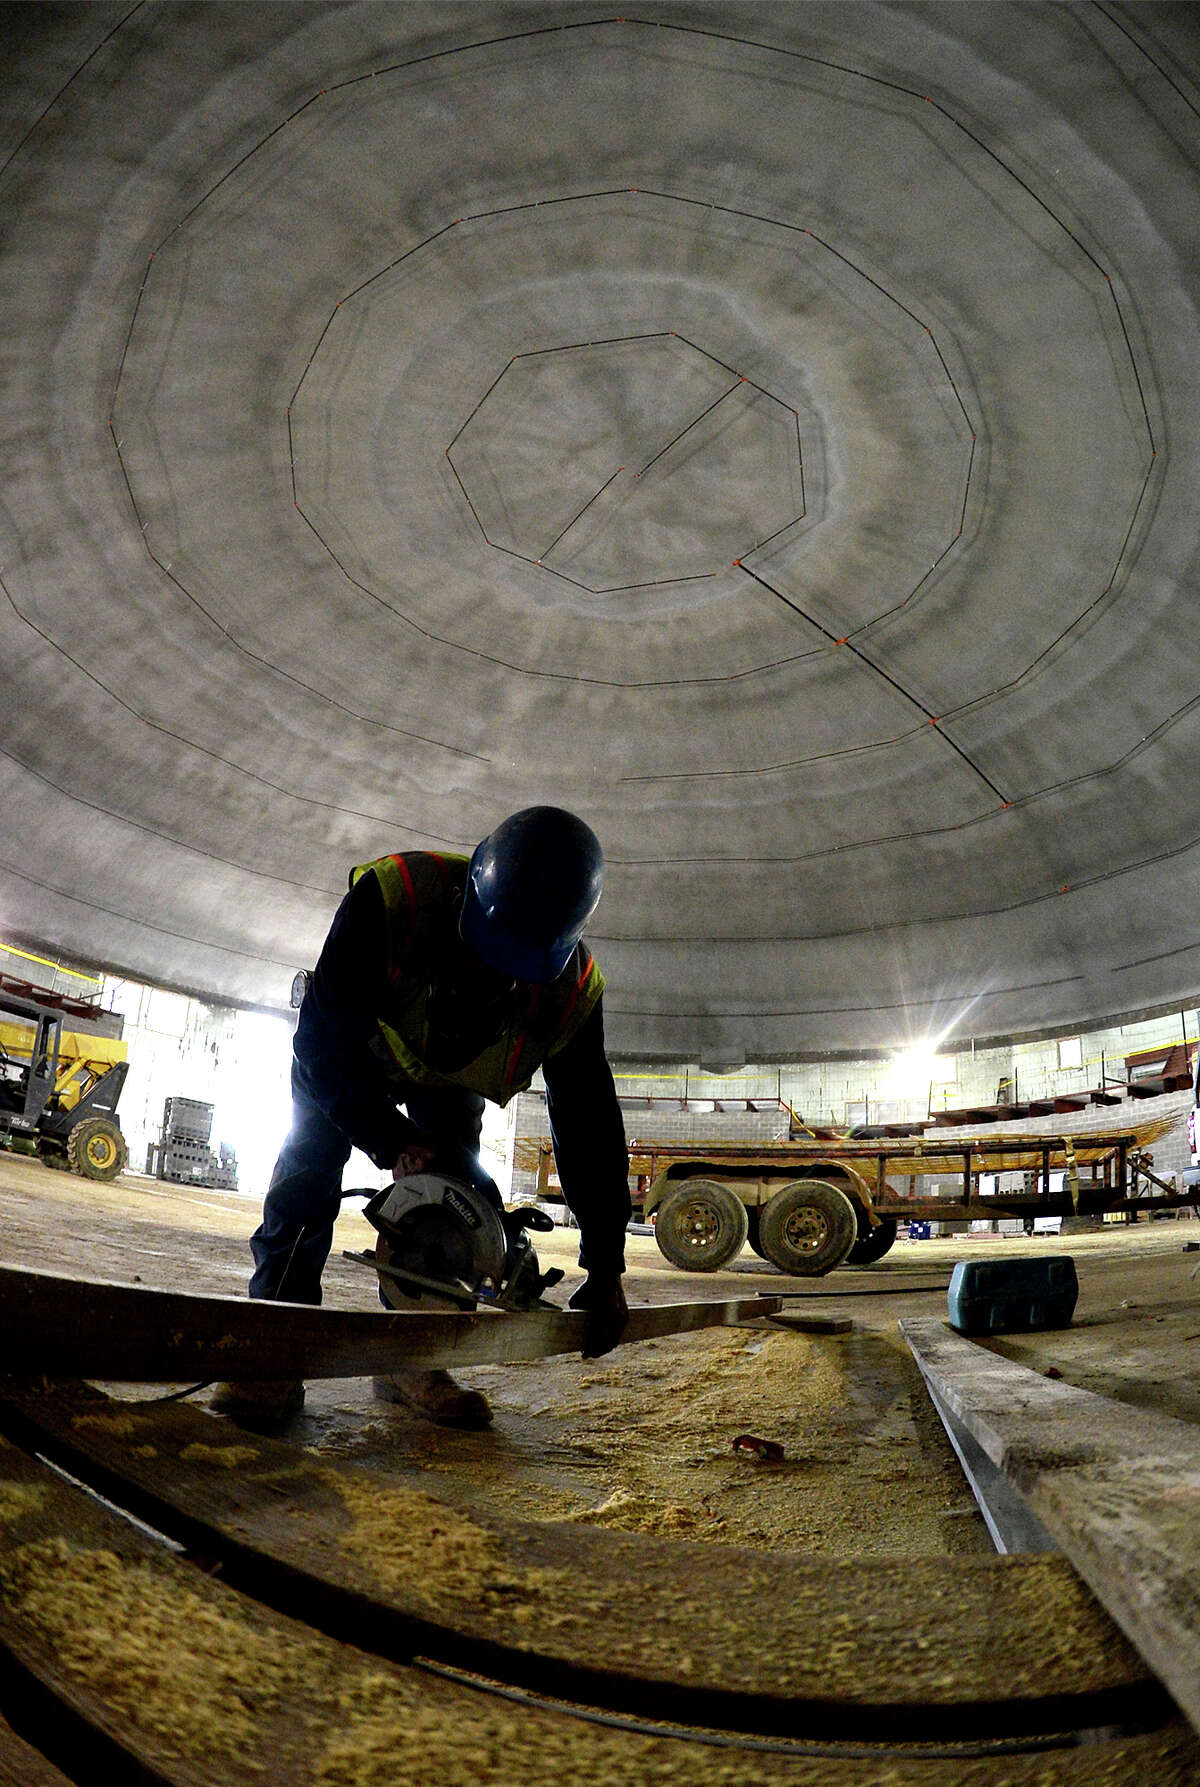 Dario Hernandez cut a plank with a saw at the Performing Arts Center and FEMA Dome being built next to Lumberton High School on March 19, 2014. The dome was completed in 2015 and will serve as a shelter for first responders during disaster situations.